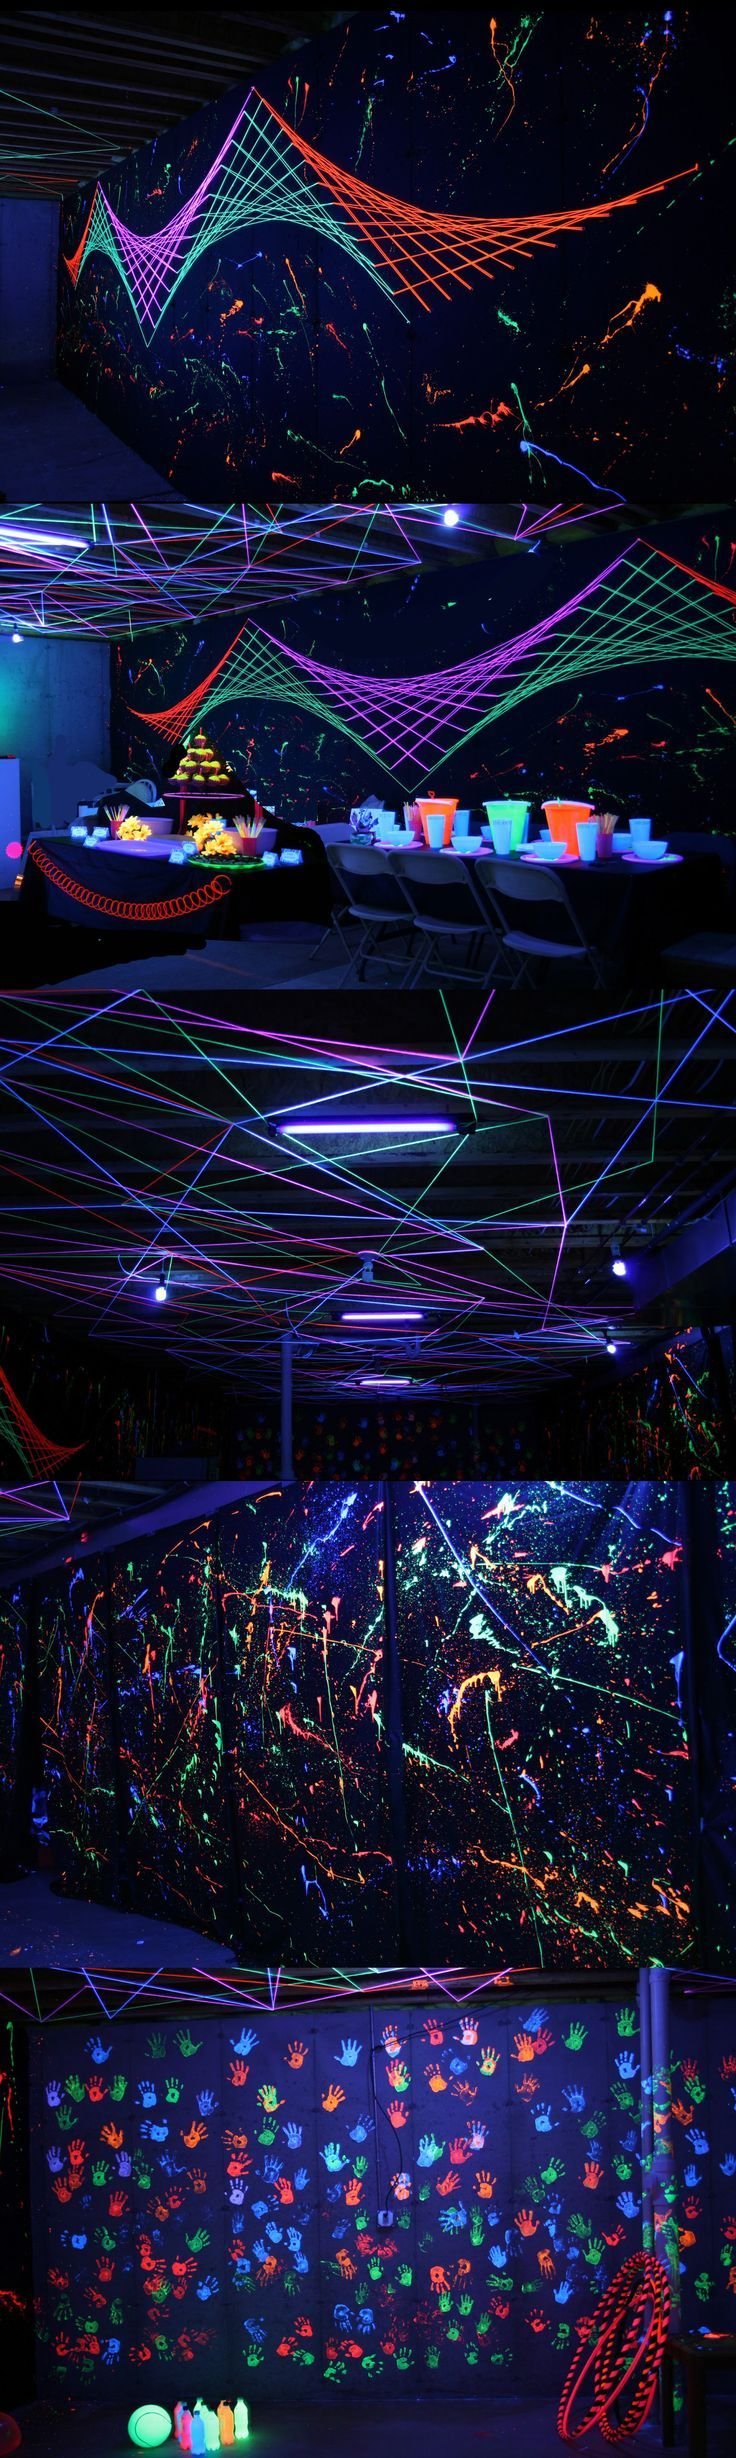 Crazy-cool black light Halloween party